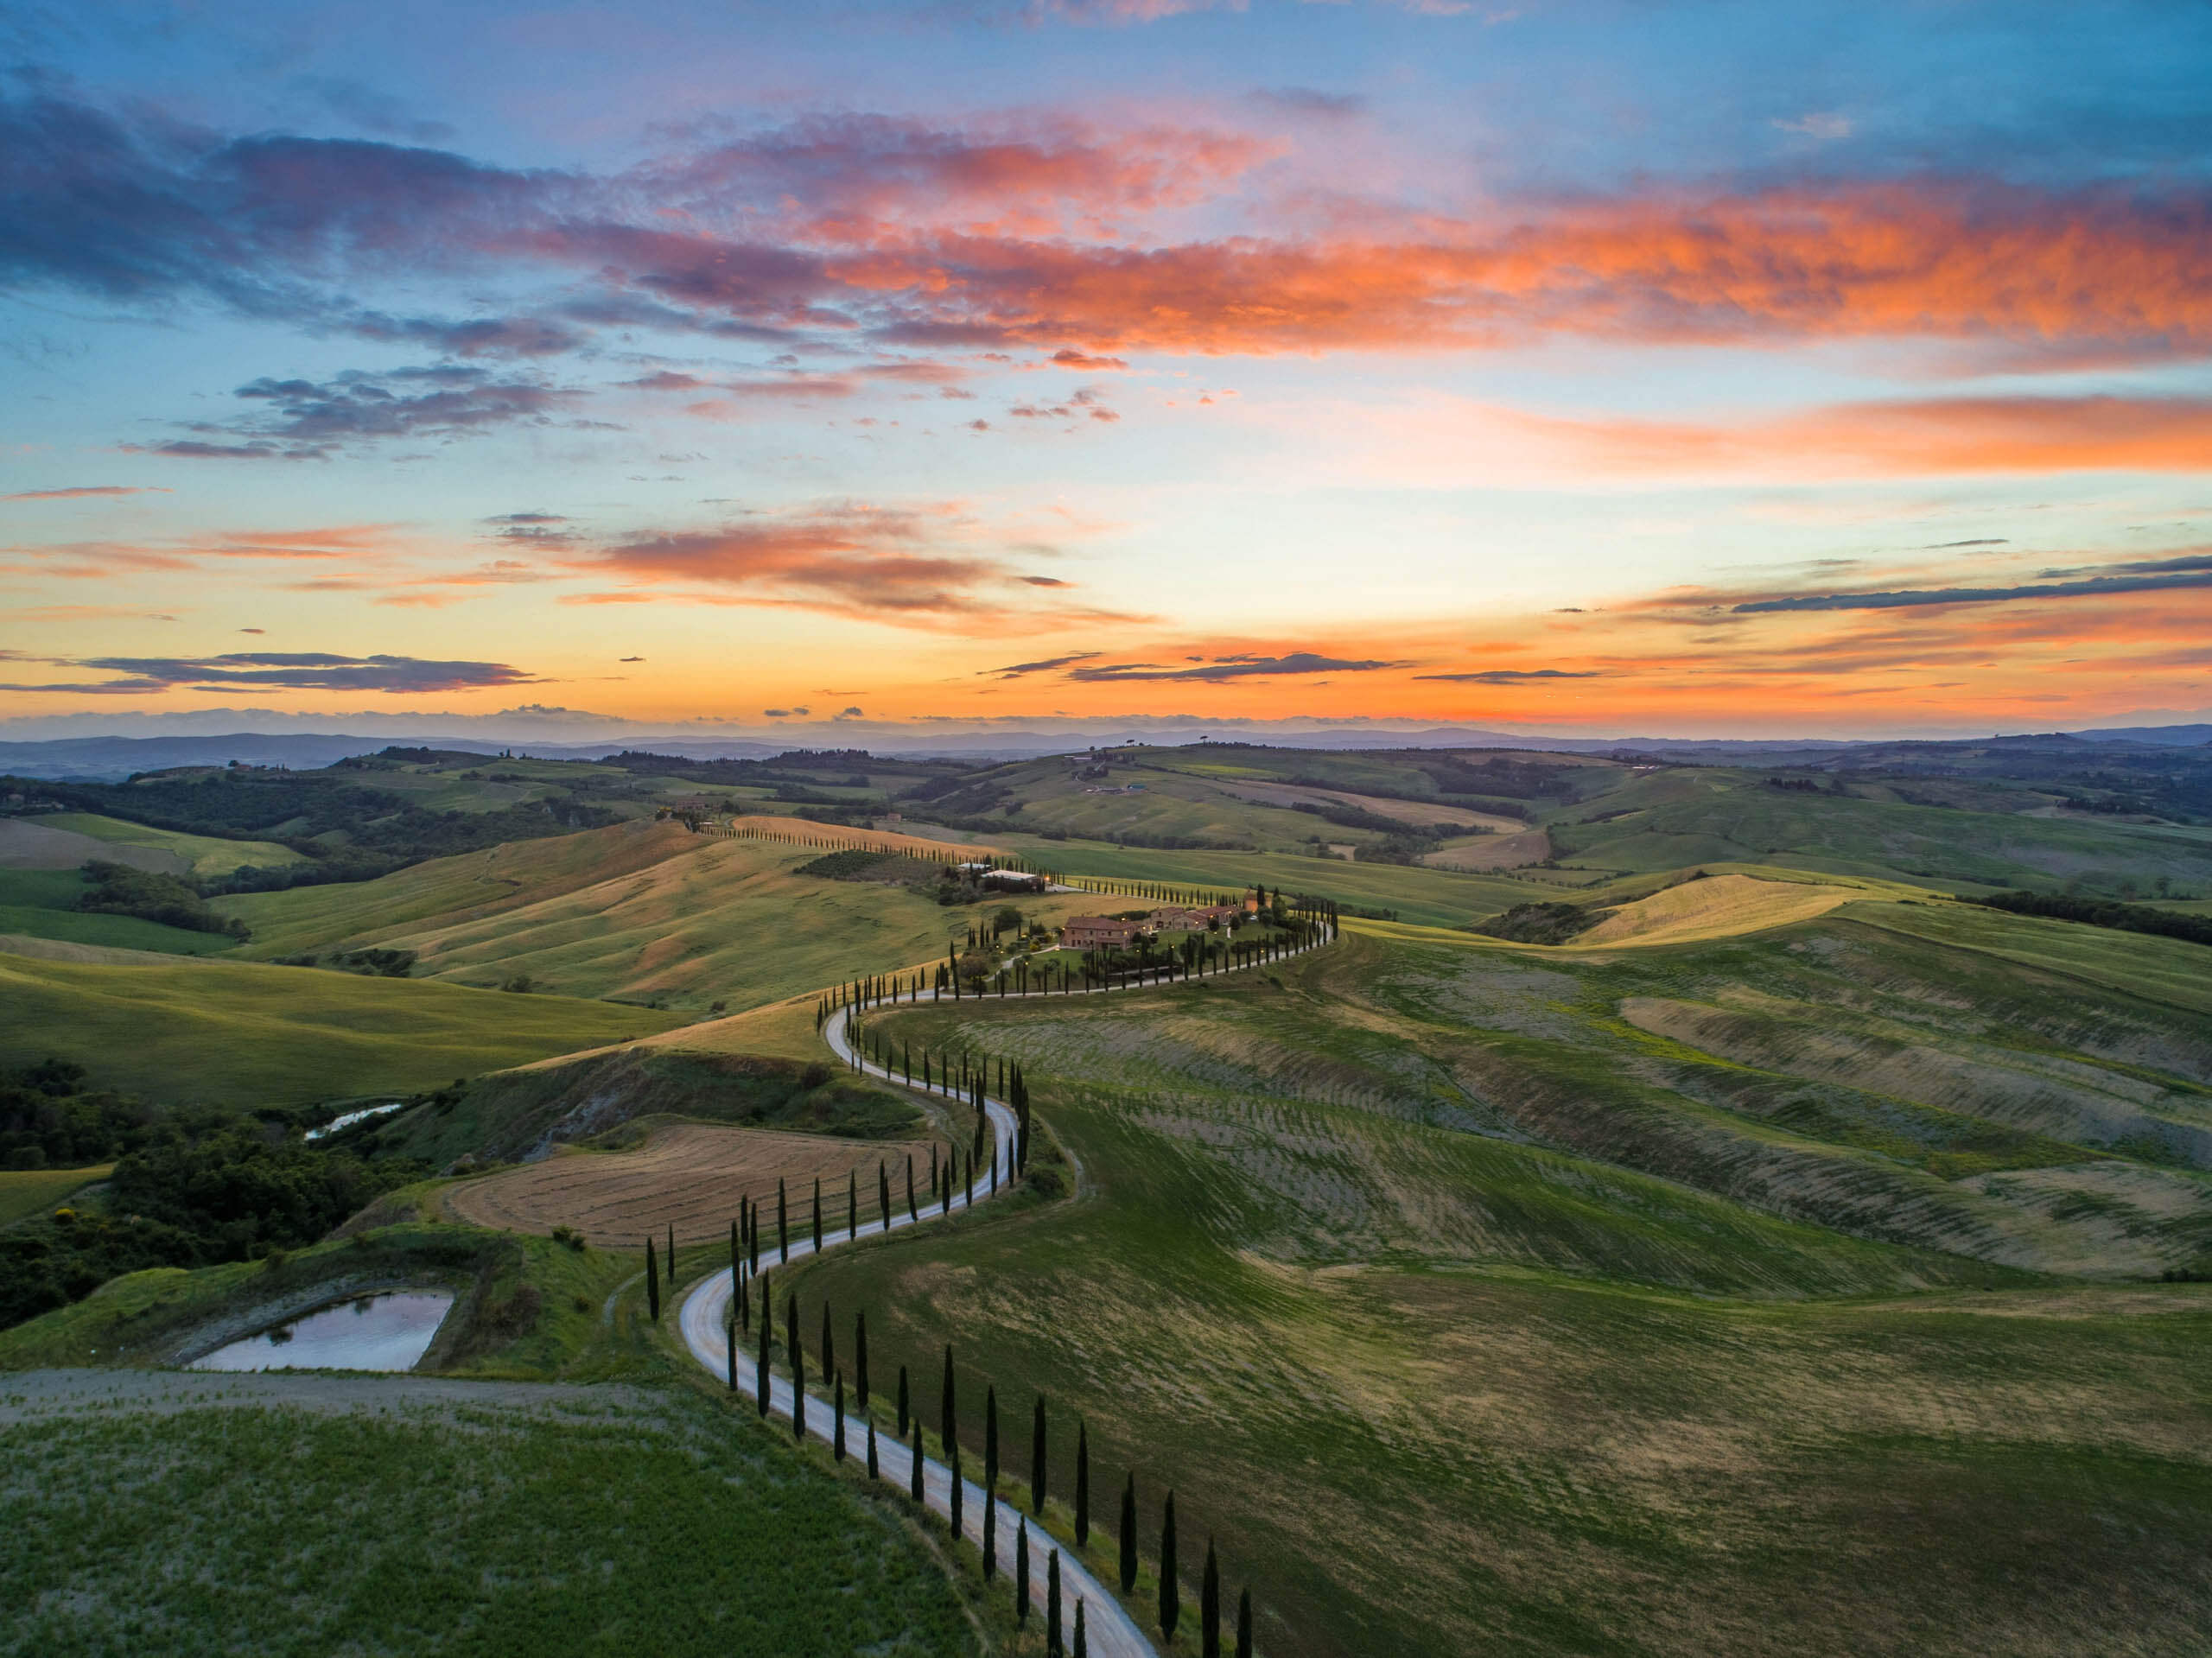 The rolling green hills of Tuscany. Photo by Luca Micheli on Unsplash